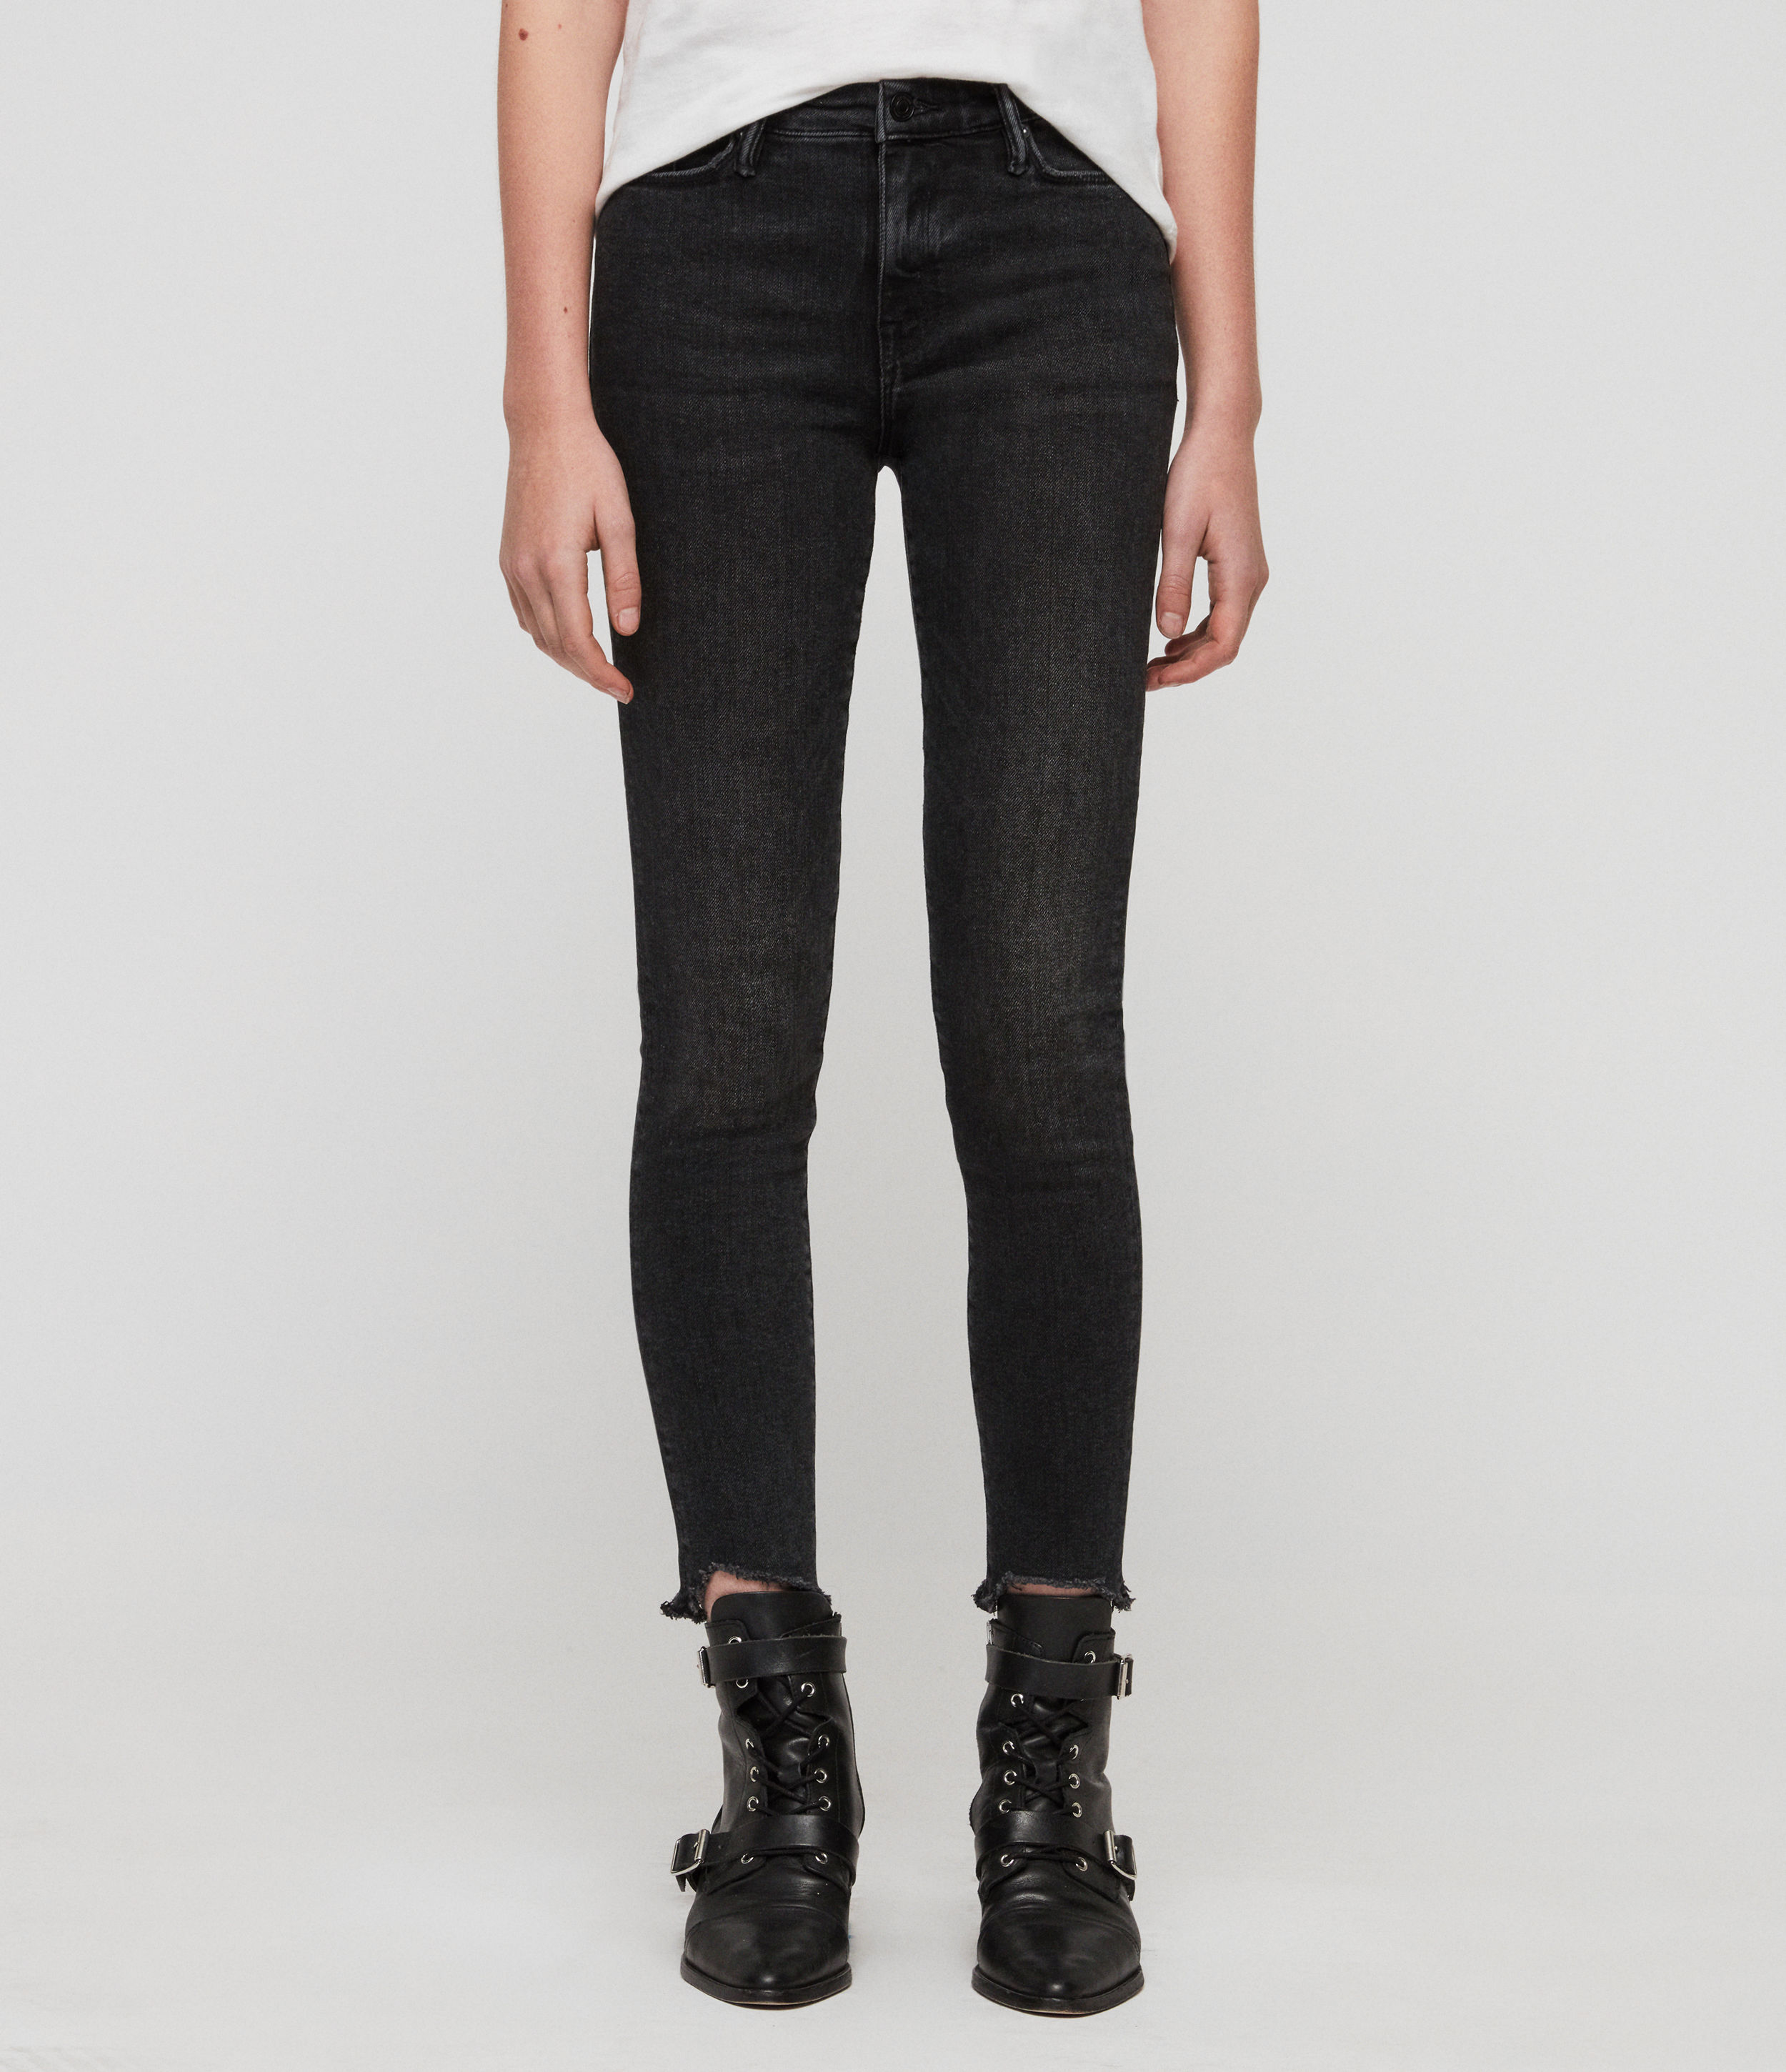 AllSaints Womens Grace Ankle Fray Skinny Mid-Rise Jeans, Washed Black, Size: 31